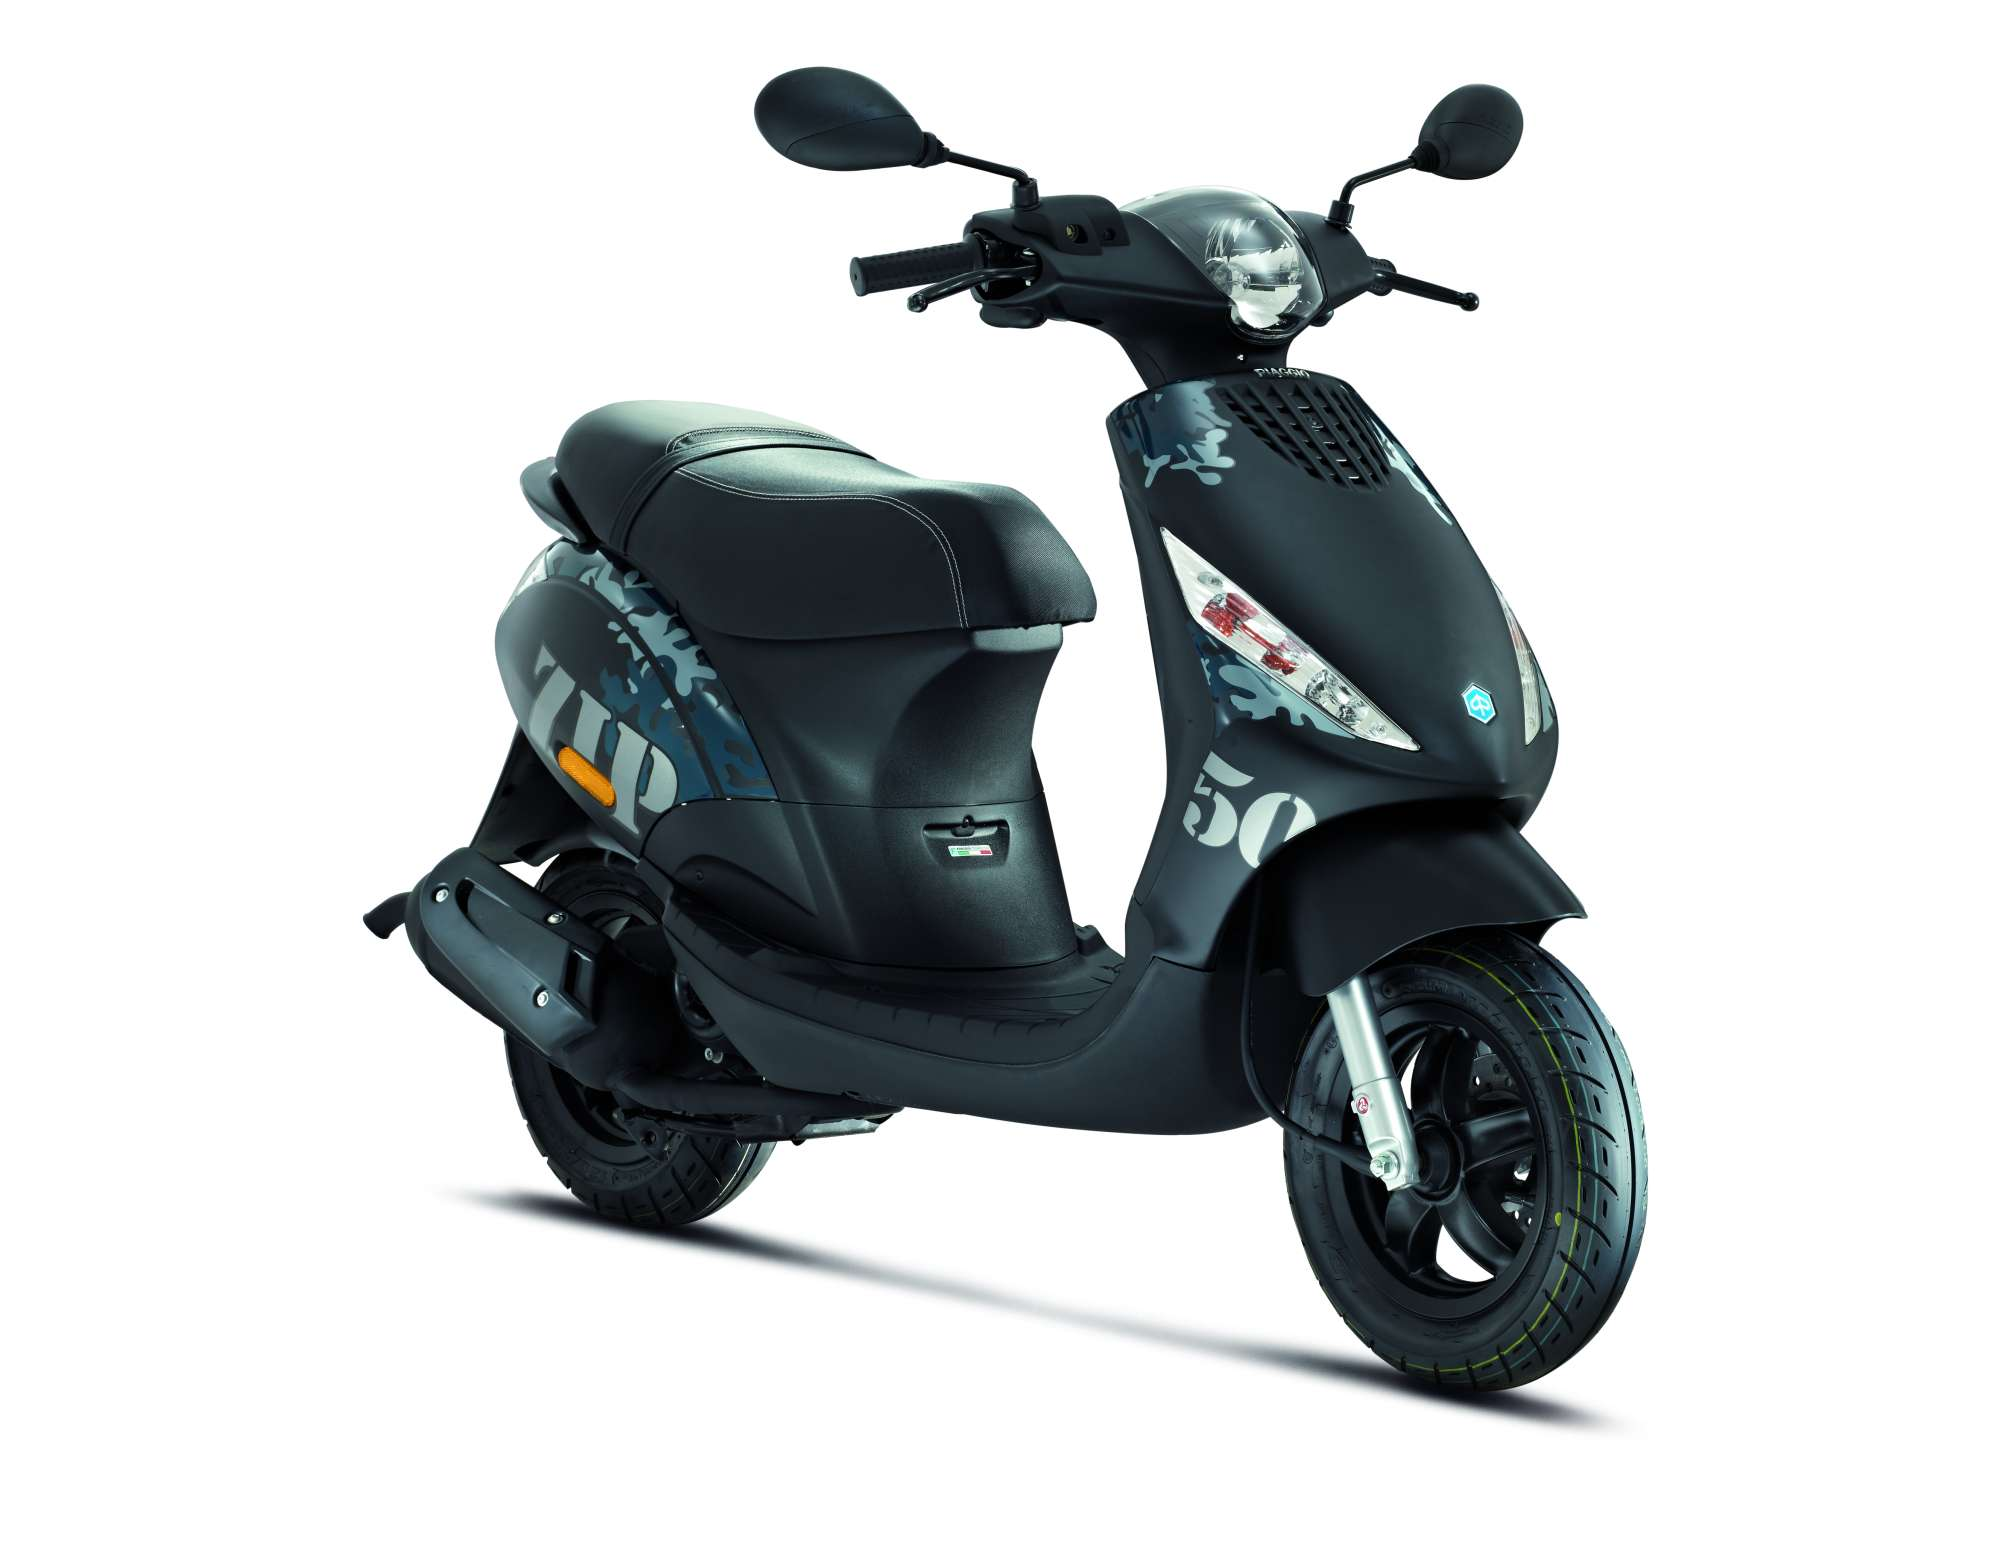 piaggio zip 50 2t all technical data of the model zip 50. Black Bedroom Furniture Sets. Home Design Ideas